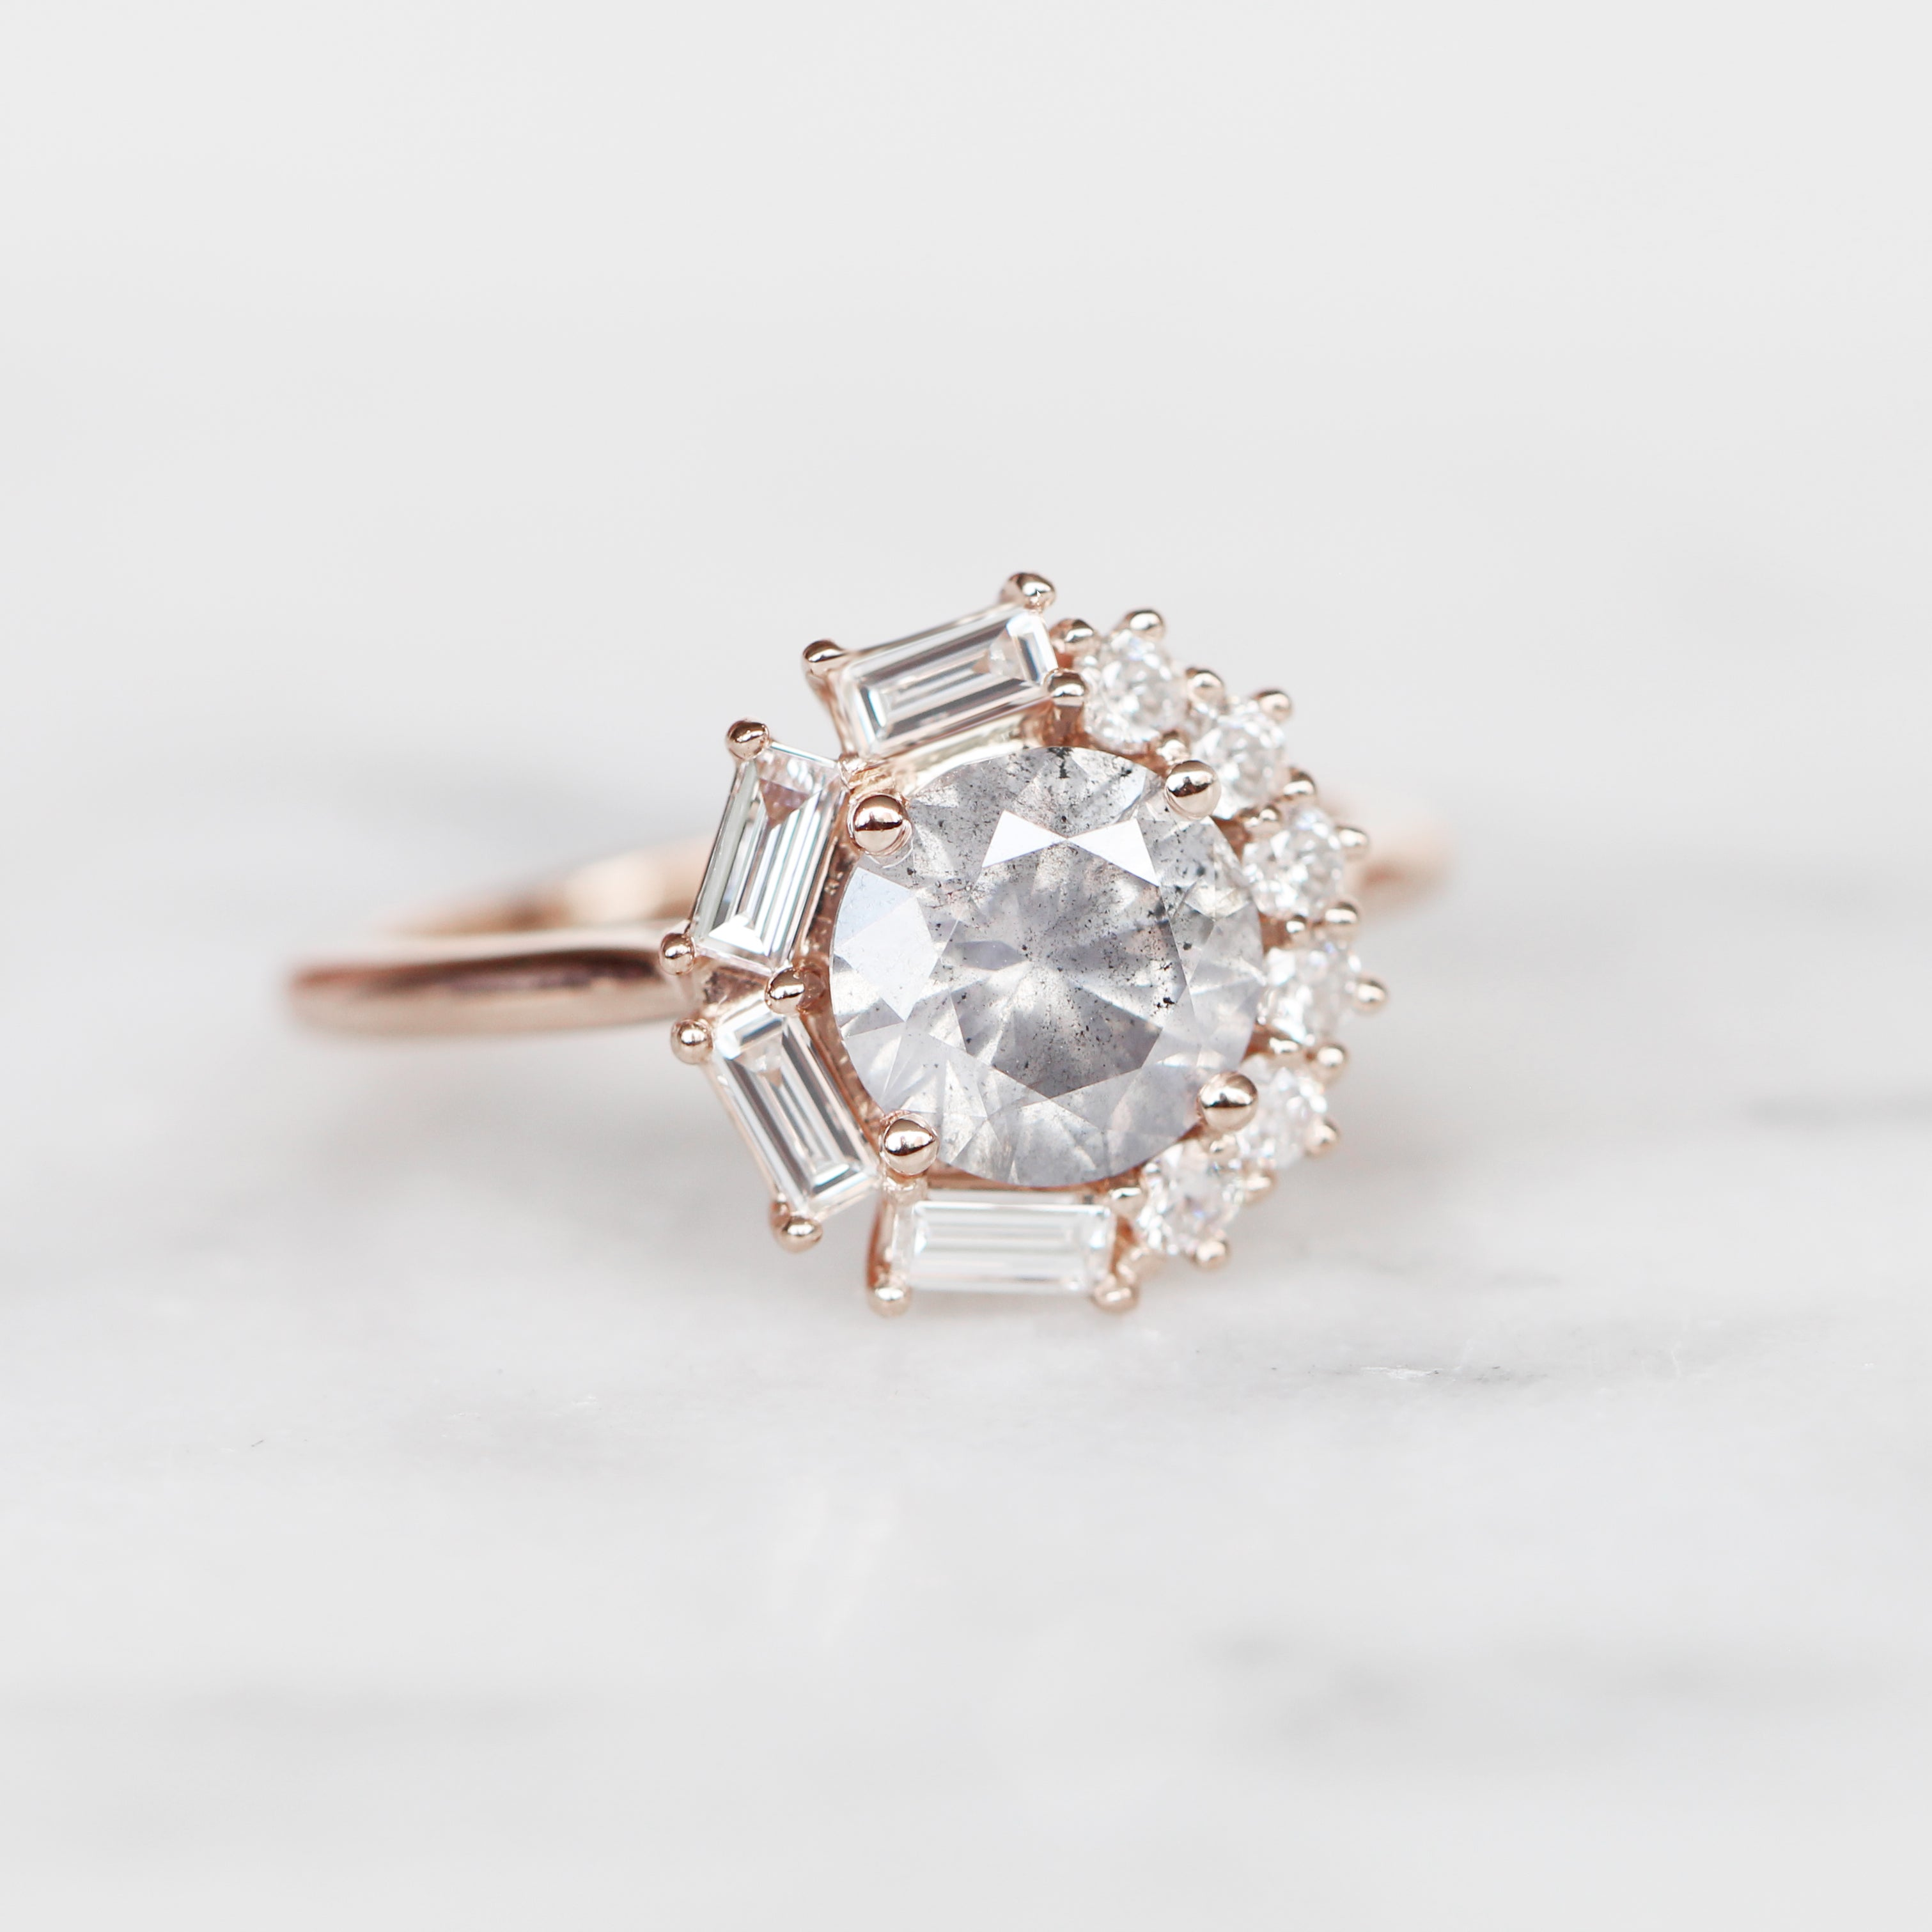 Collins ring with 1.40 carat brilliant round celestial diamond in 14k rose gold - ready to size and ship - Celestial Diamonds ® by Midwinter Co.